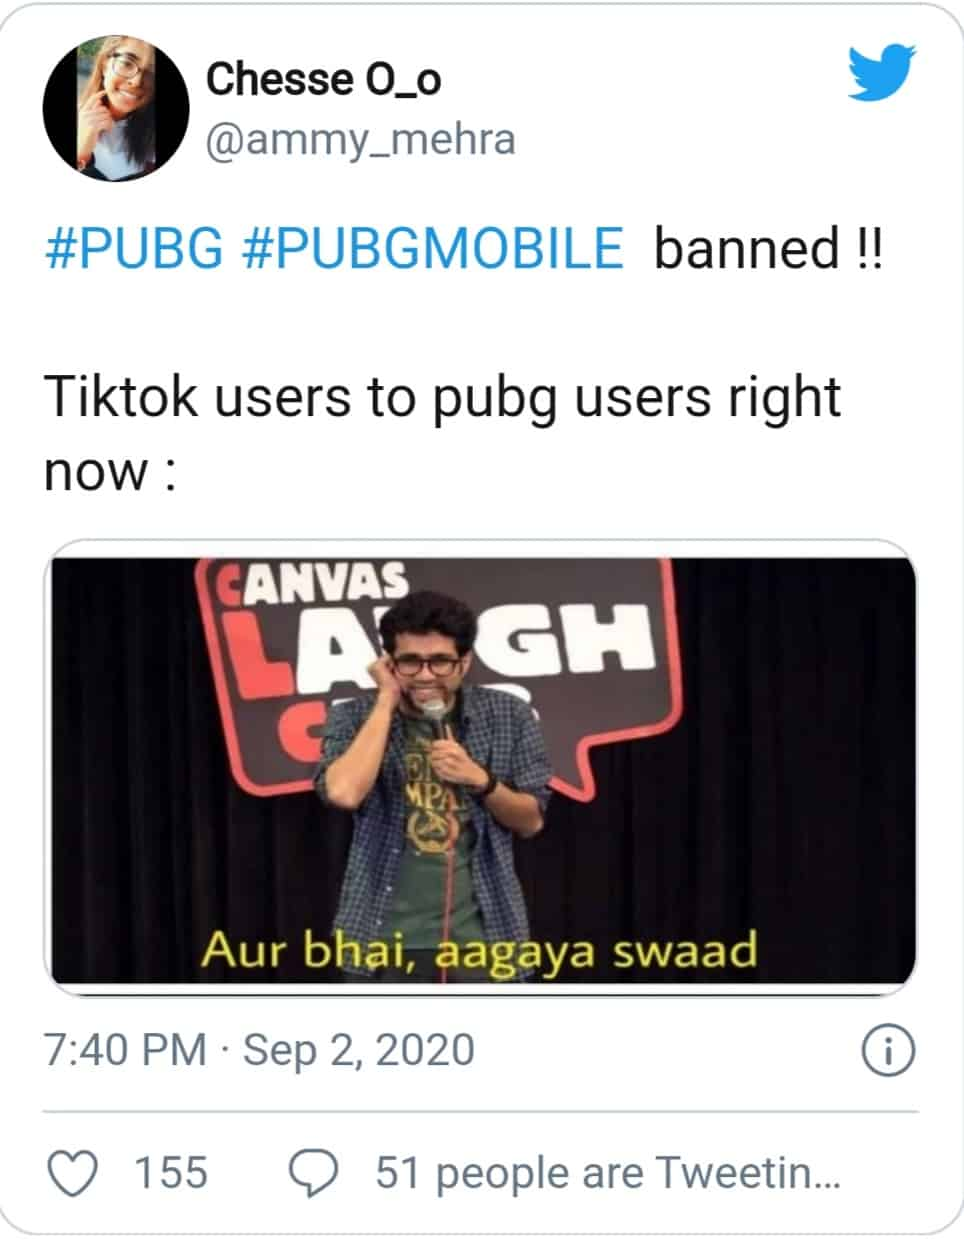 PUBG ban (tiktokers teasing pubg players